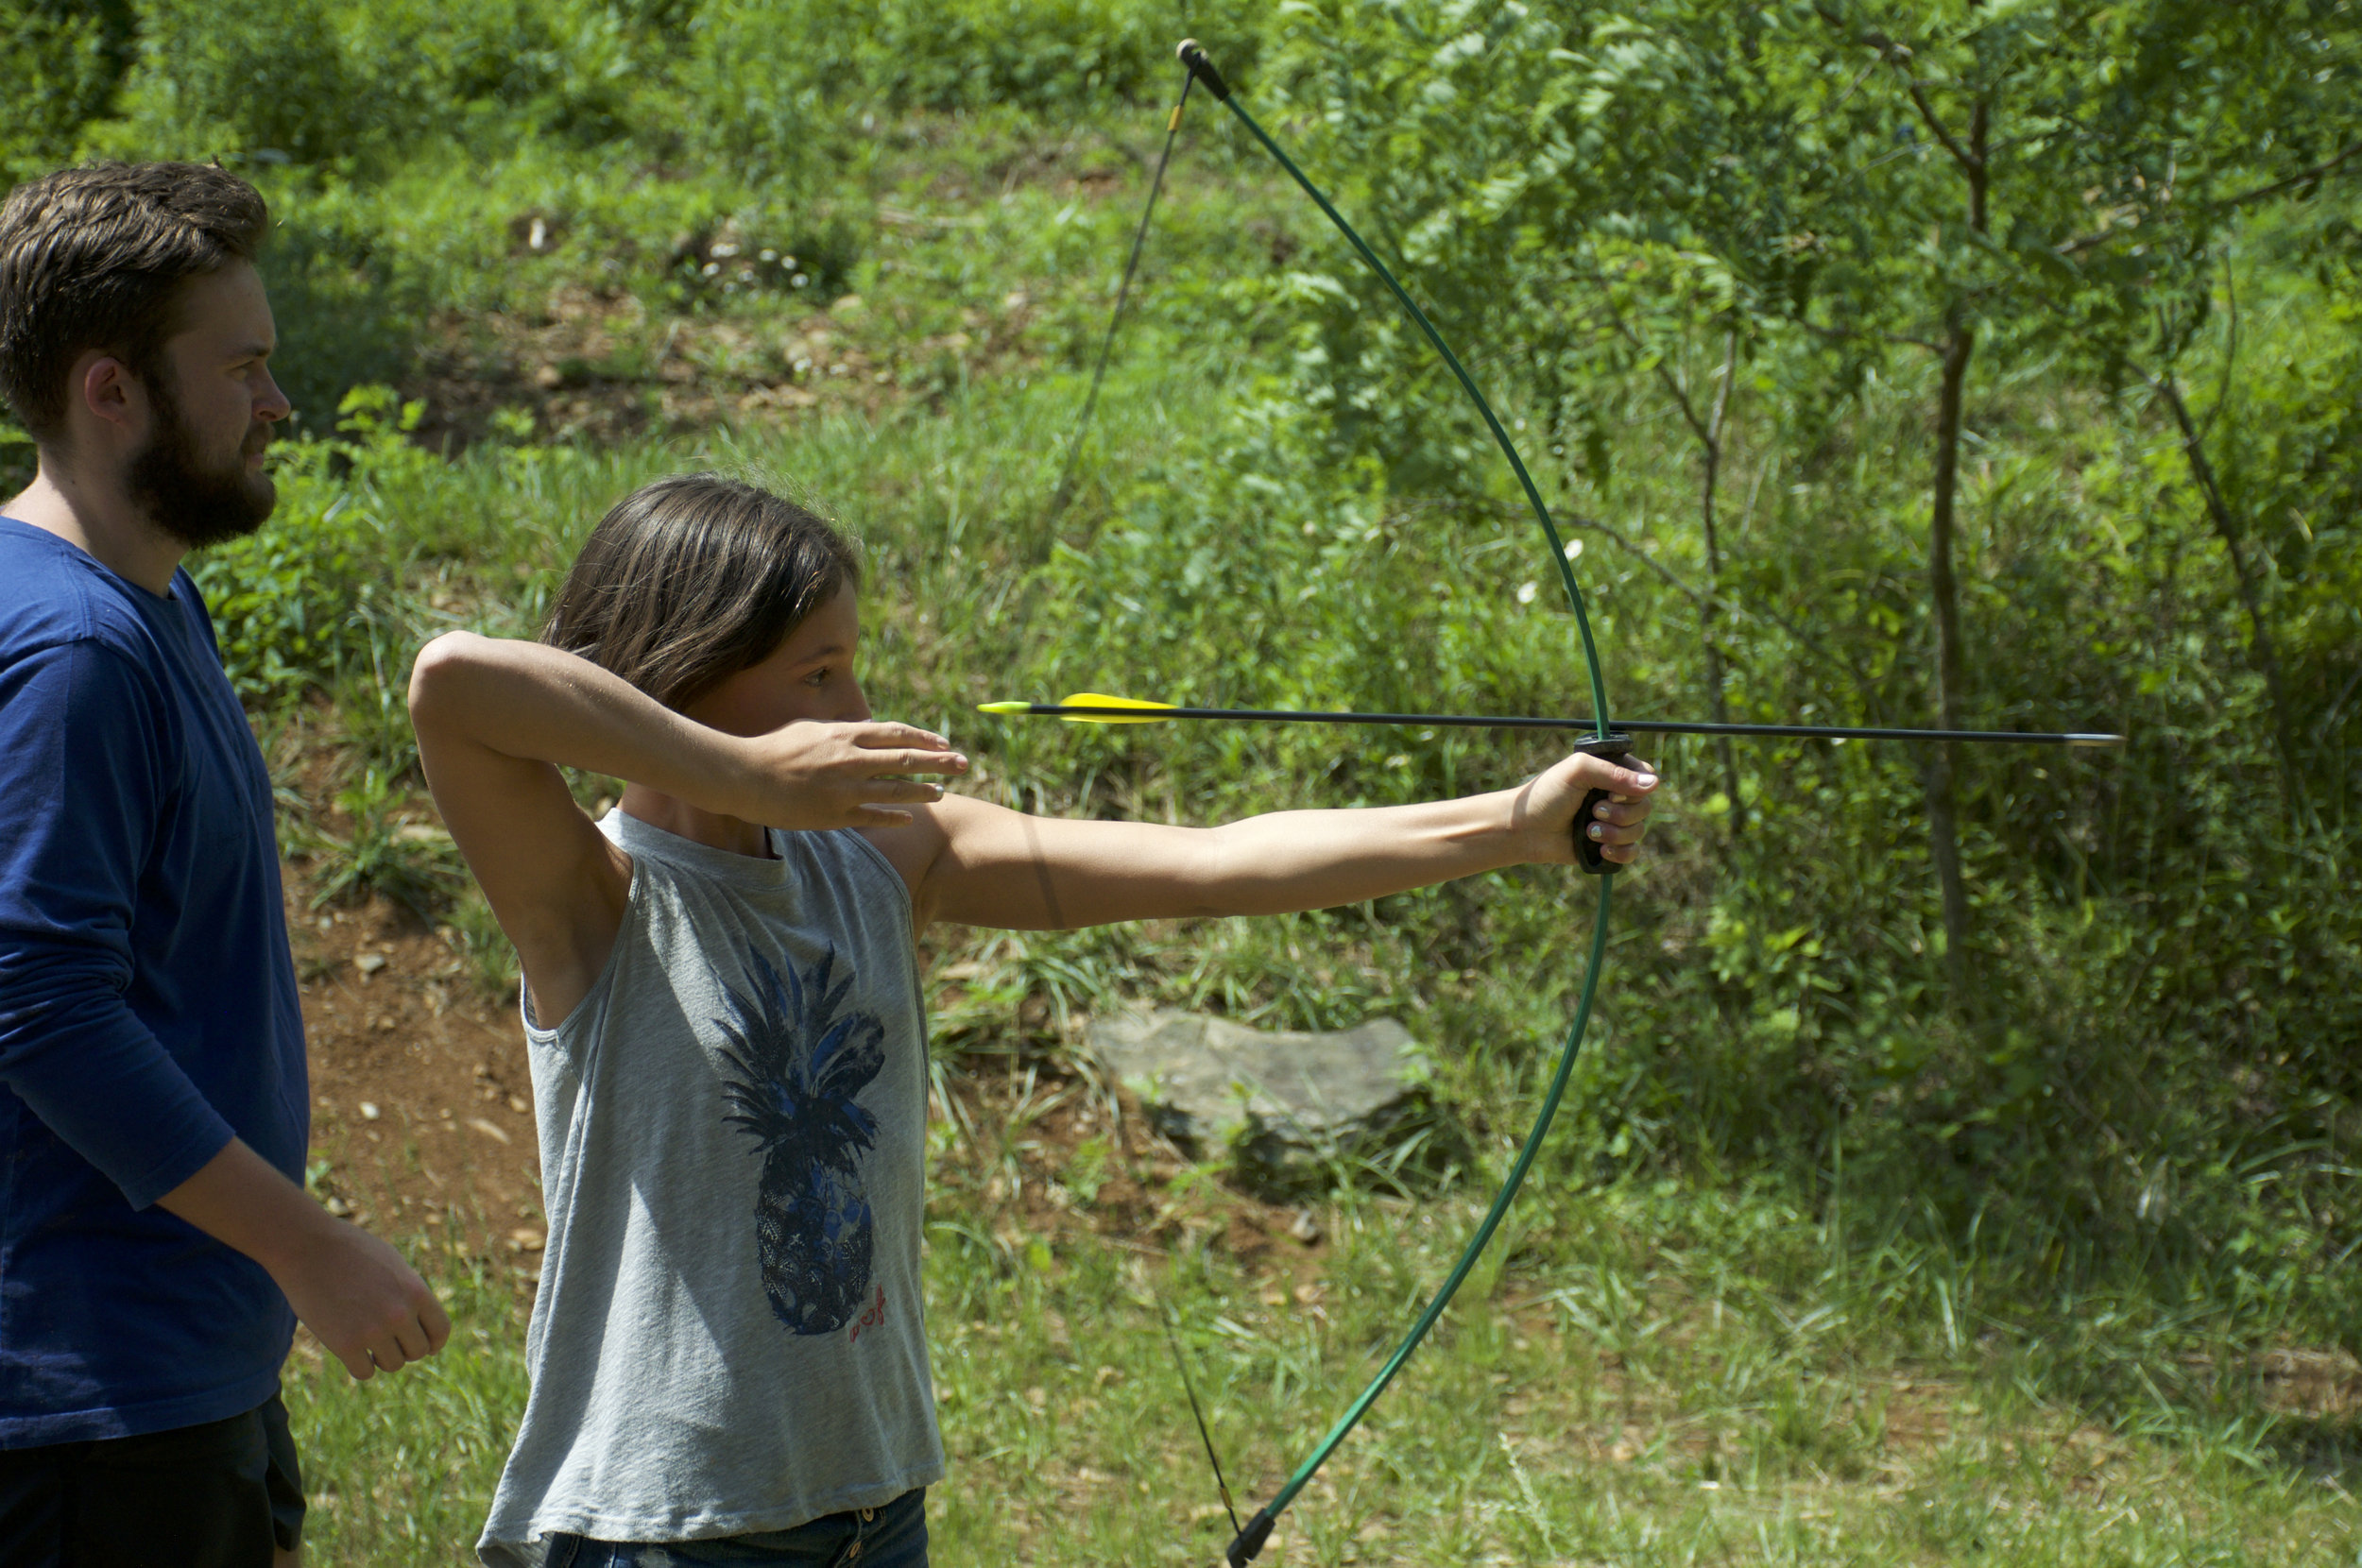 Camp Summer : Taking aim at our goals.